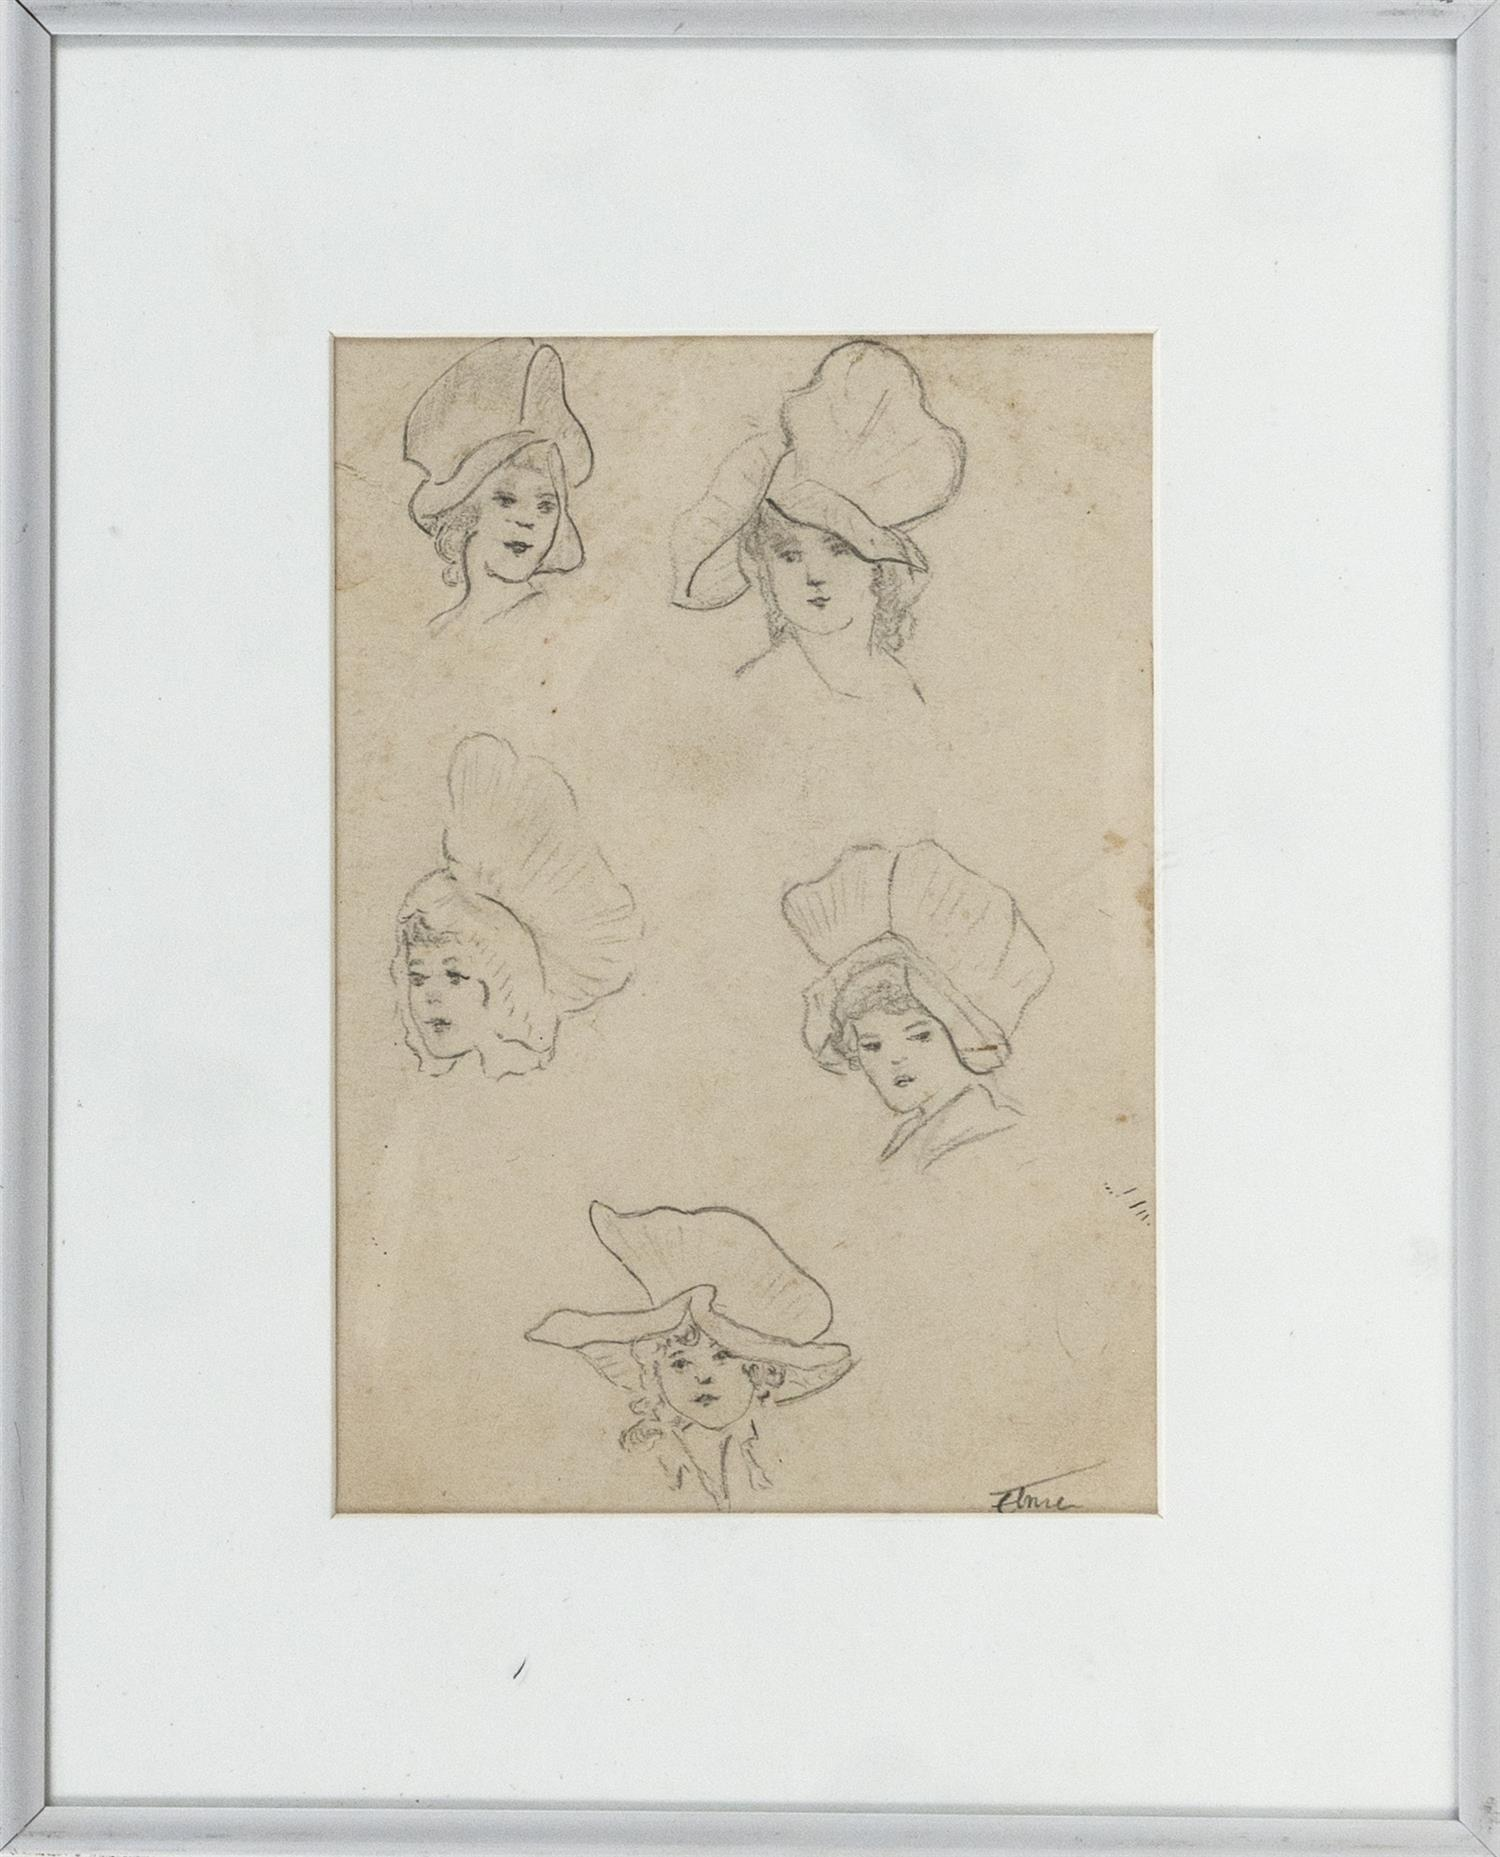 """STEPHEN MORGAN ETNIER, Maine/California, 1903-1984, Sketch of a woman in five different poses., Pencil on paper, 6.5"""" x 4.5"""" sight...."""